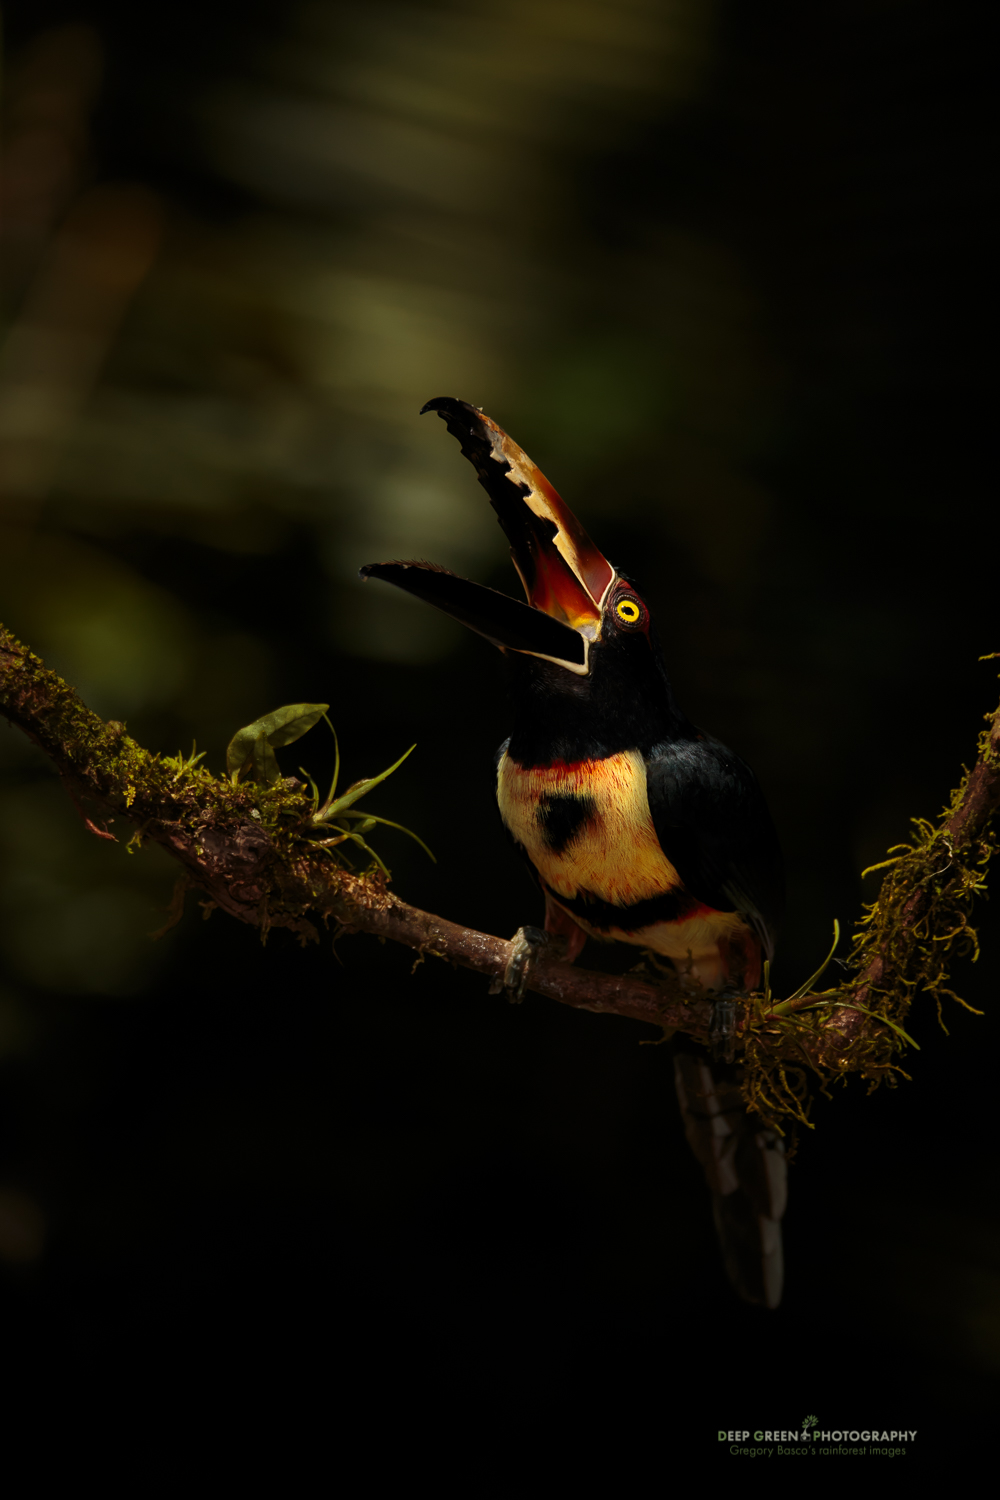 I took this image of a Collared Aracari calling in late afternoon light in a Costa Rican rainforest garden with the Sigma 150-600 mm Sport version on a Canon 1Dx at 370 mm at f/6.3 for 1/2500 at ISO 1000. I was equally pleased with the sharpness of the Sport.